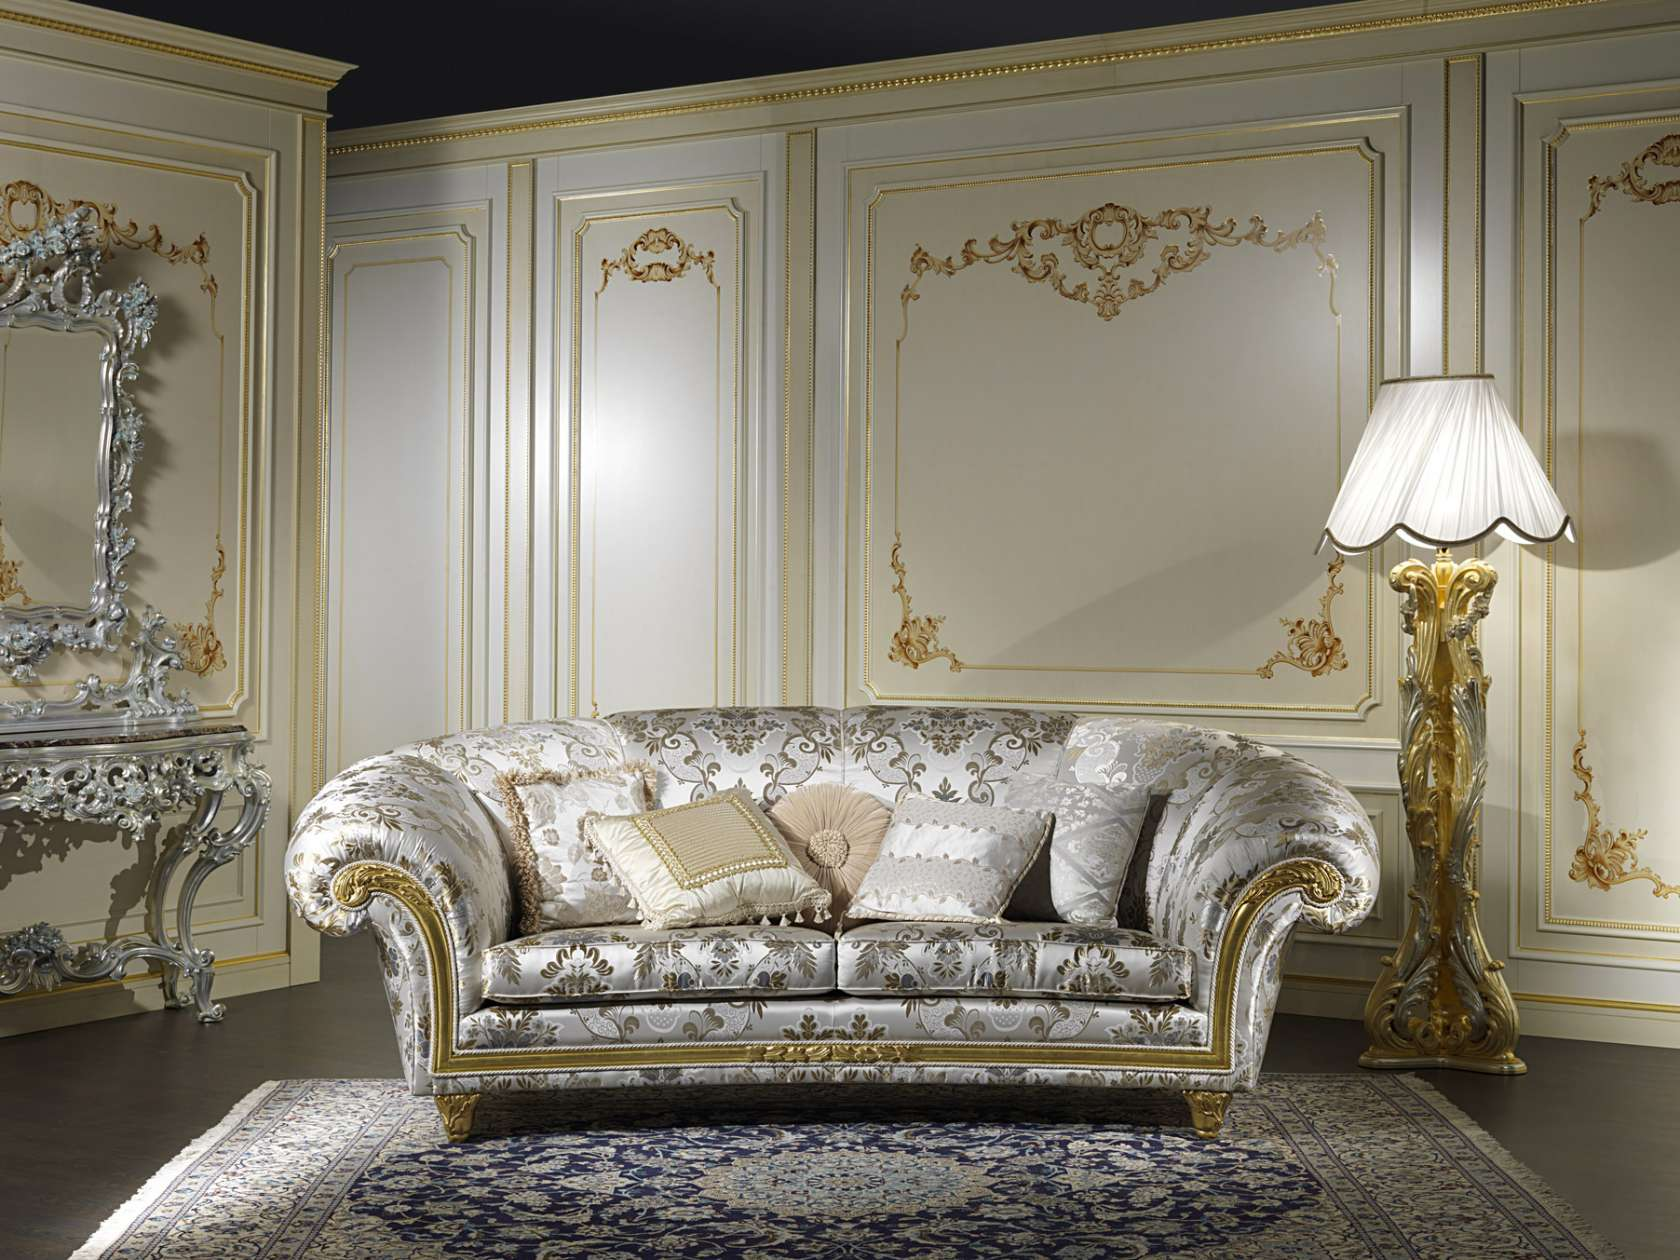 Furniture for a living room in classic style palace